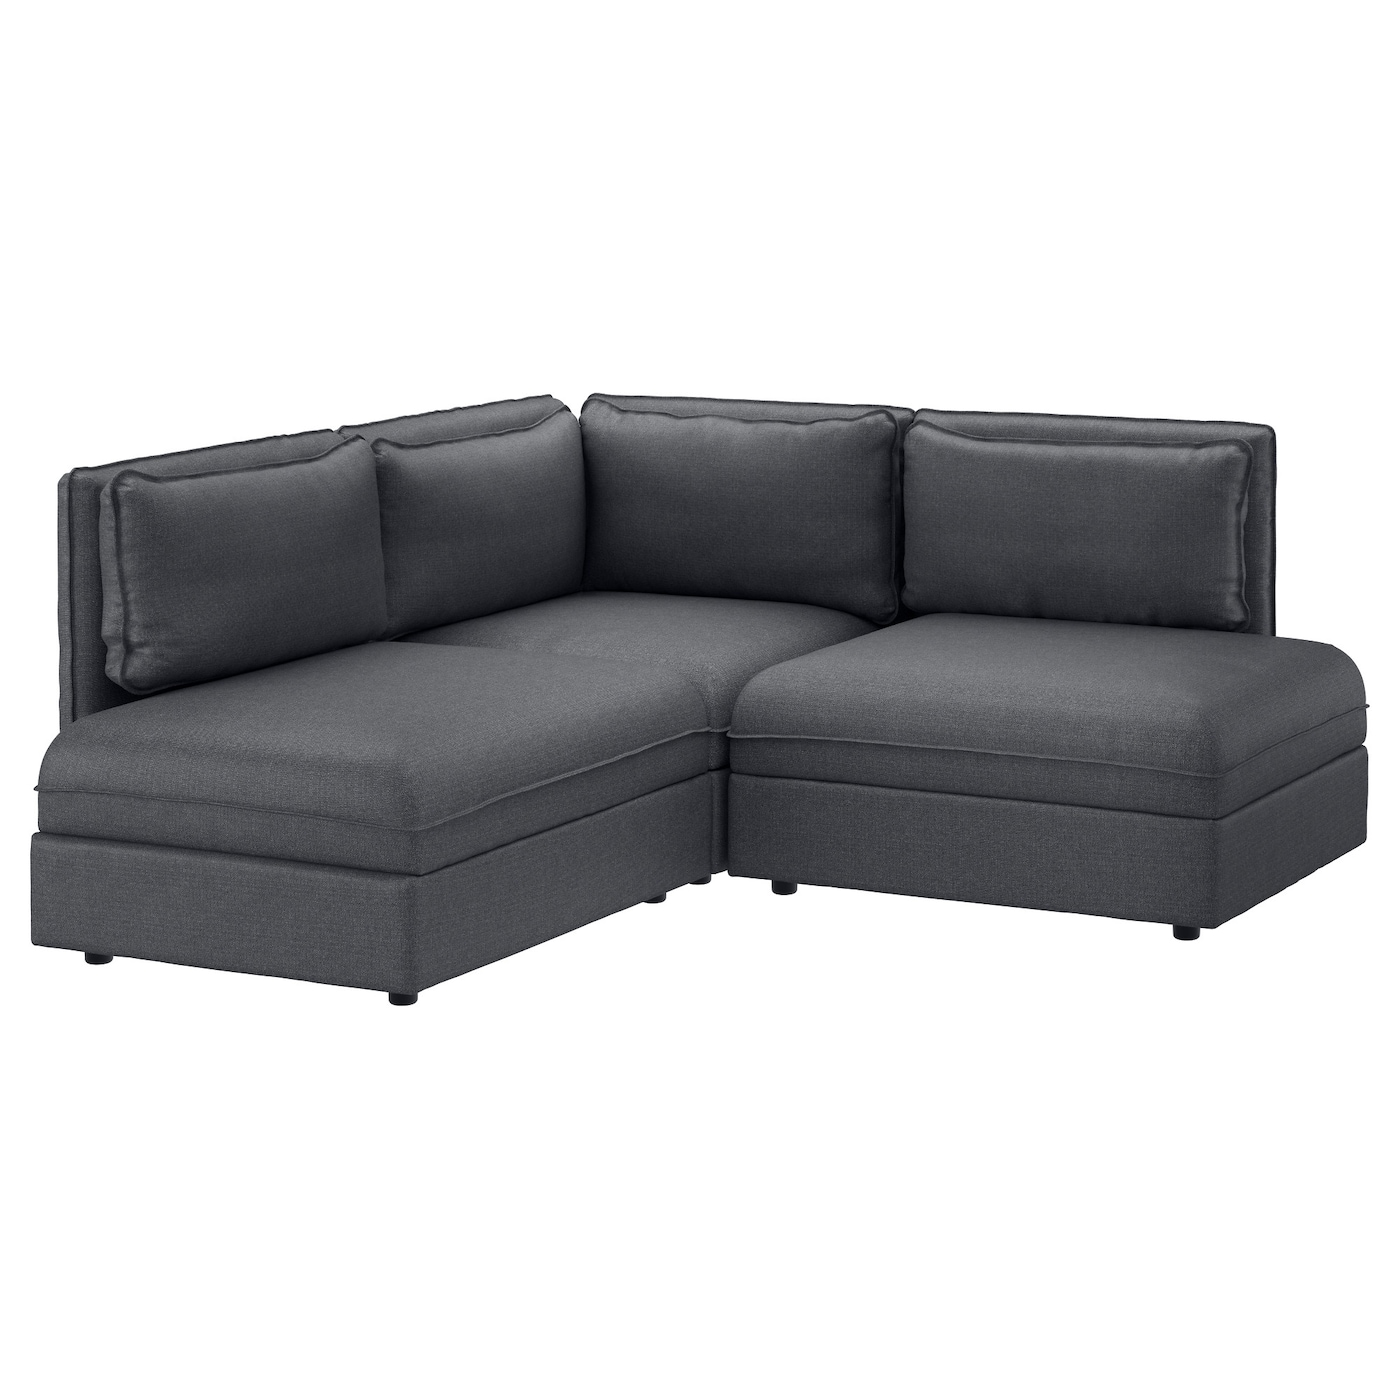 Vallentuna 3 seat corner sofa hillared dark grey ikea for Ikea corner sofa